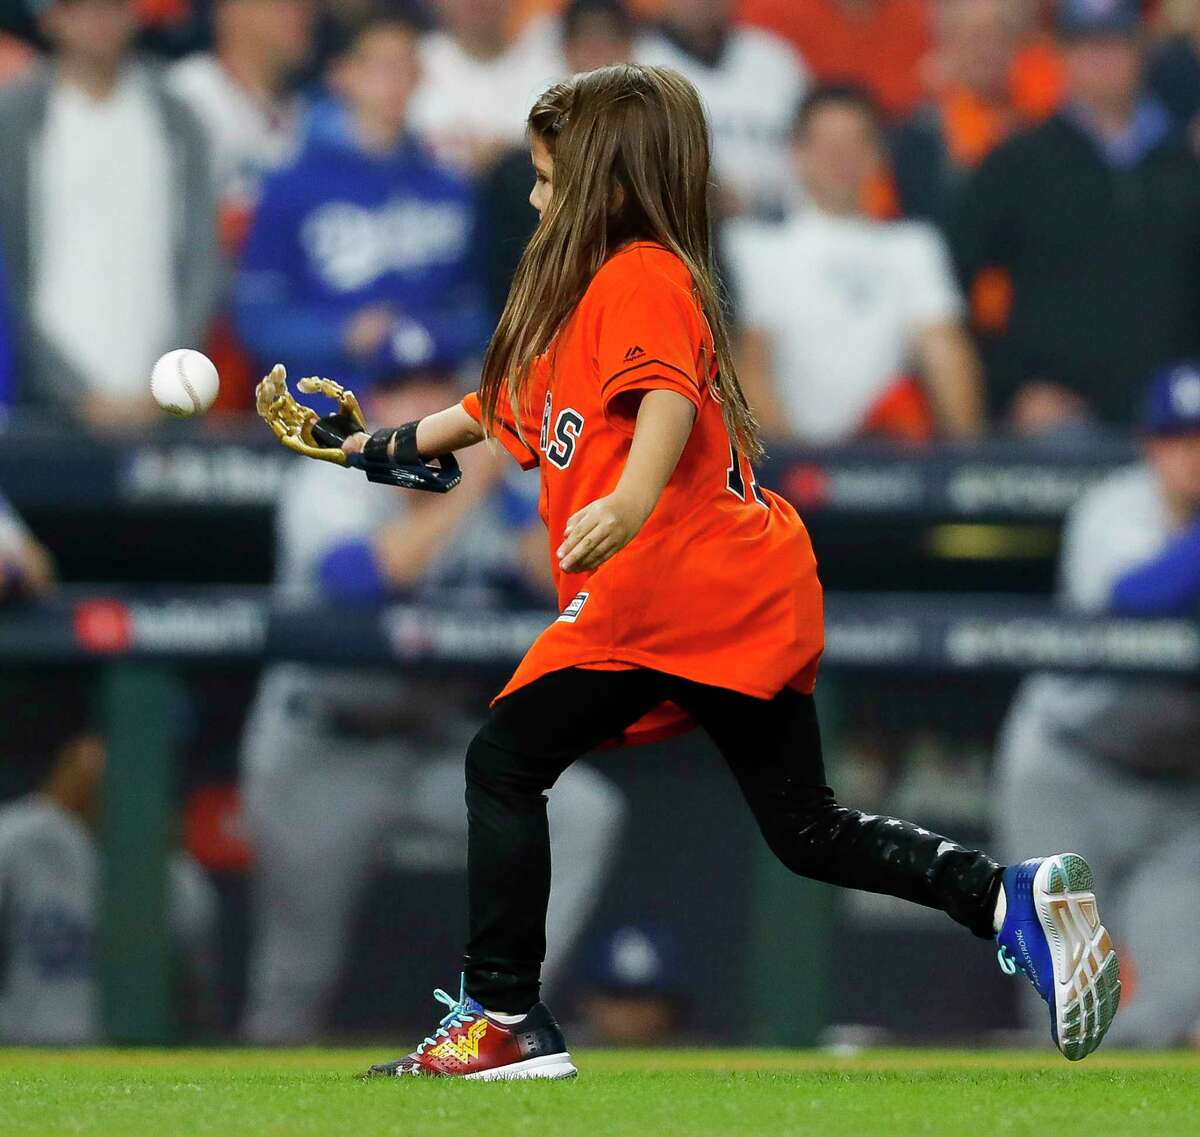 Hailey Dawson, 7, who uses a 3D printed prosthetic hand, throws out the ceremonial first pitch of Game 4 of the World Series at Minute Maid Park on Saturday, Oct. 28, 2017, in Houston.